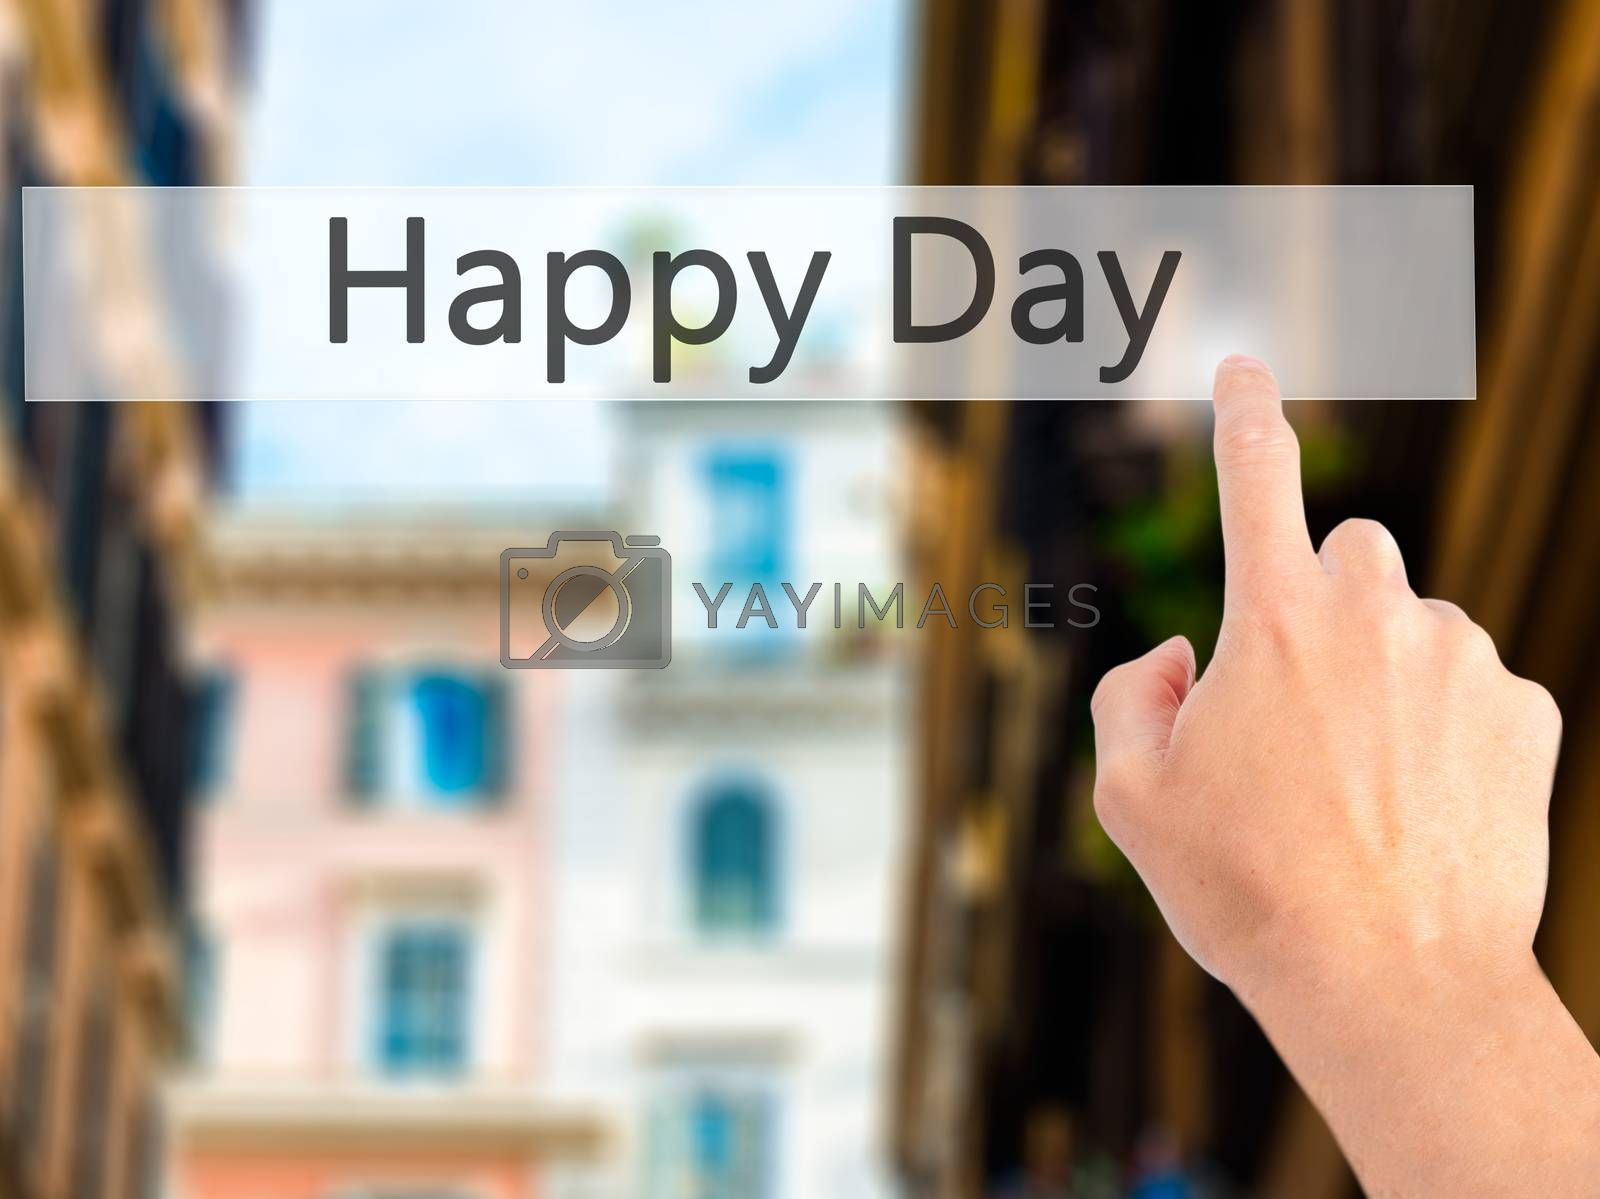 Happy Day - Hand pressing a button on blurred background concept by jackald